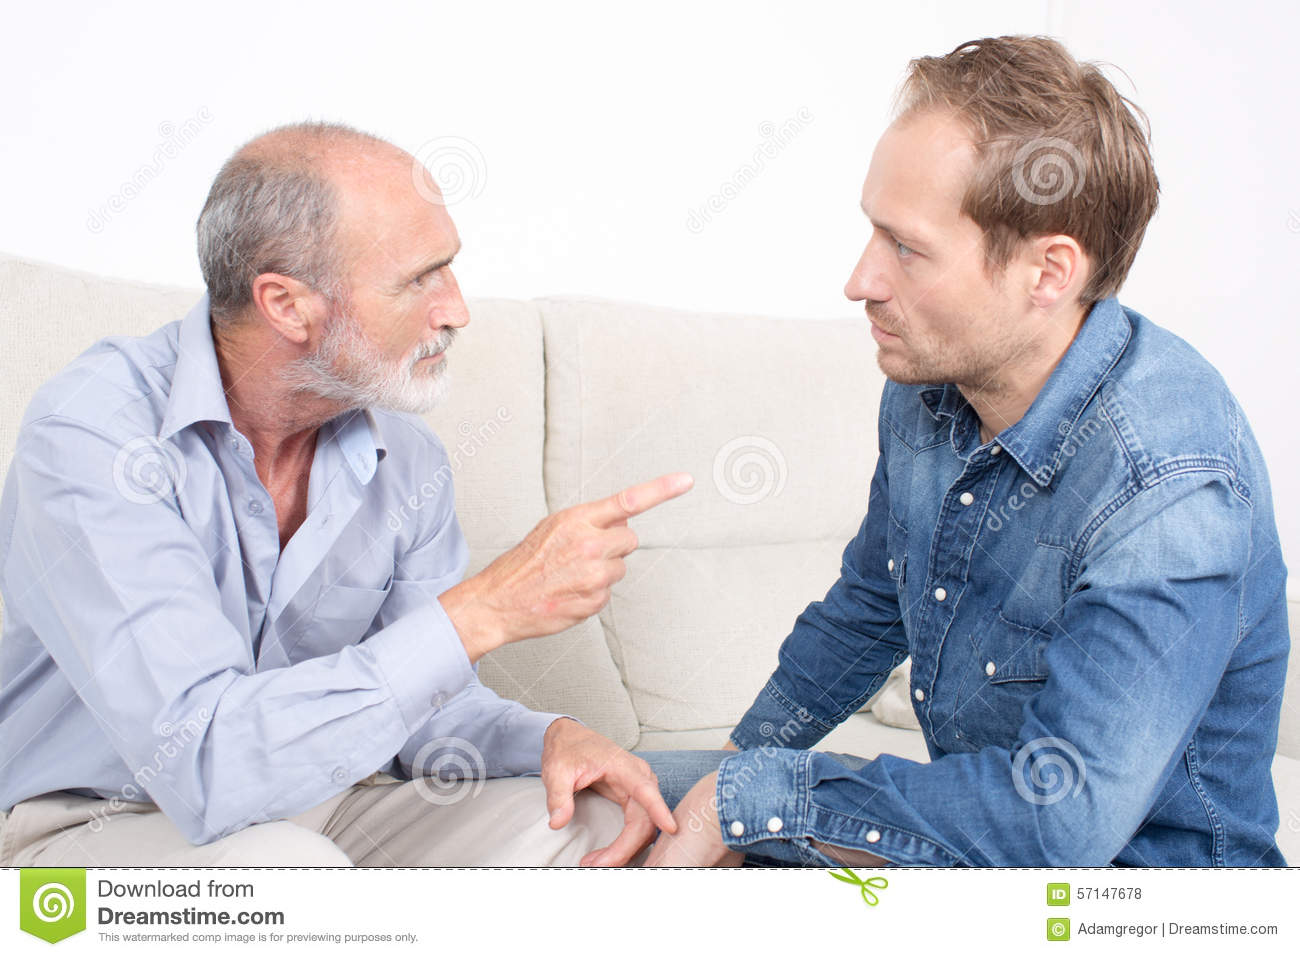 Image result for verbal confrontation images